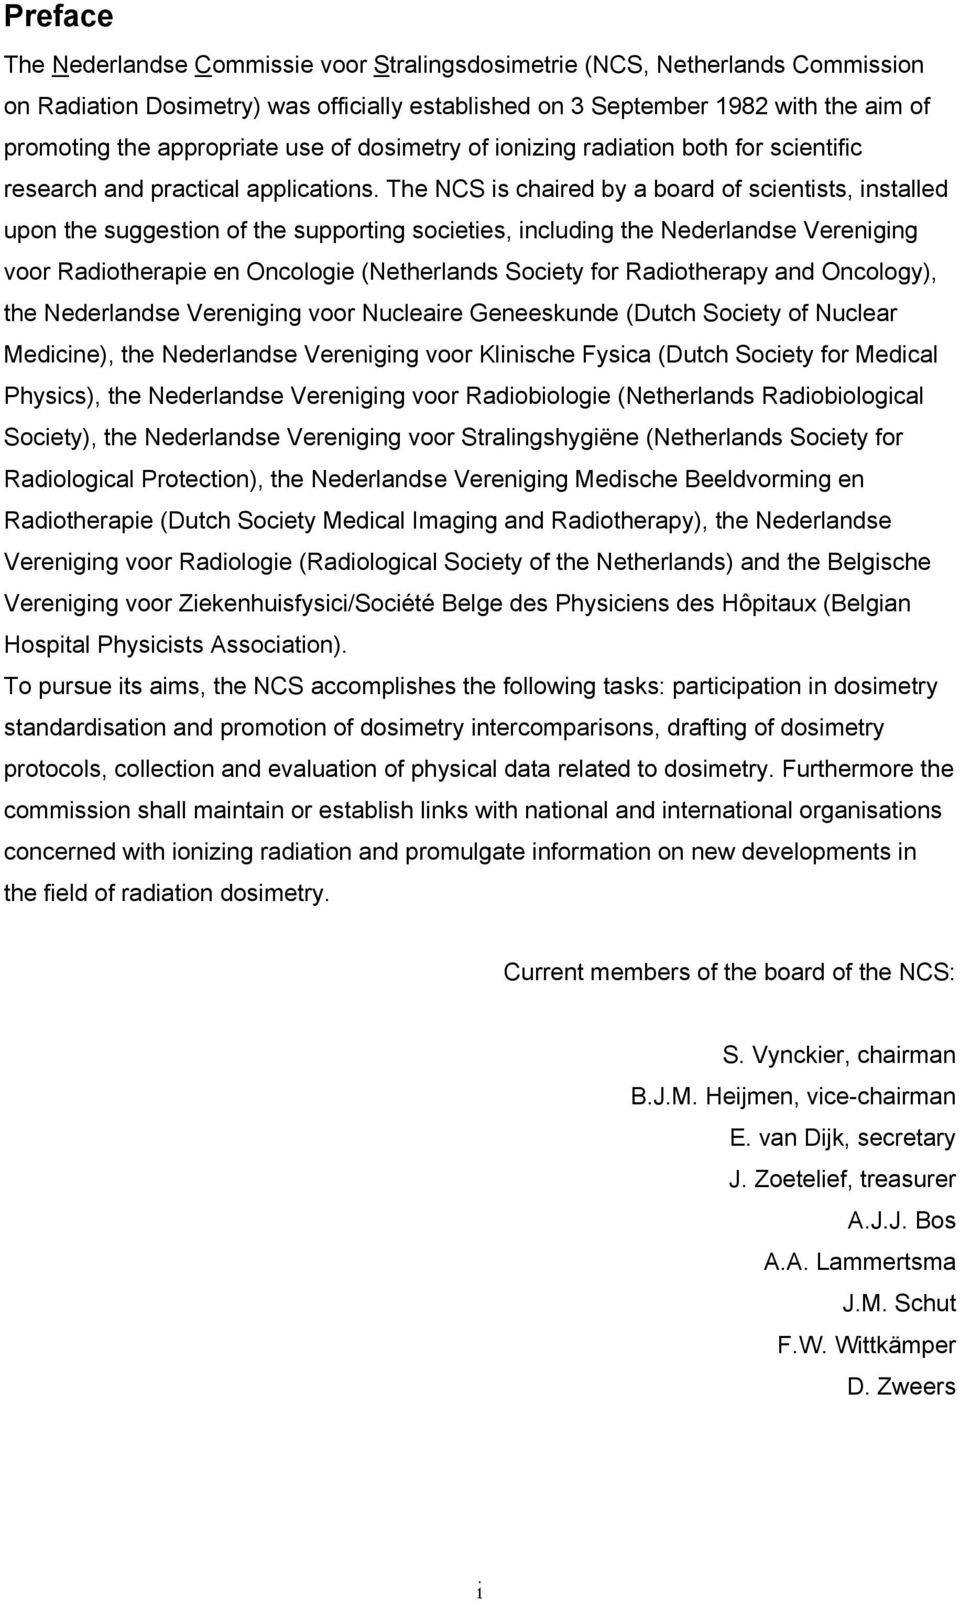 The NCS is chaired by a board of scientists, installed upon the suggestion of the supporting societies, including the Nederlandse Vereniging voor Radiotherapie en Oncologie (Netherlands Society for